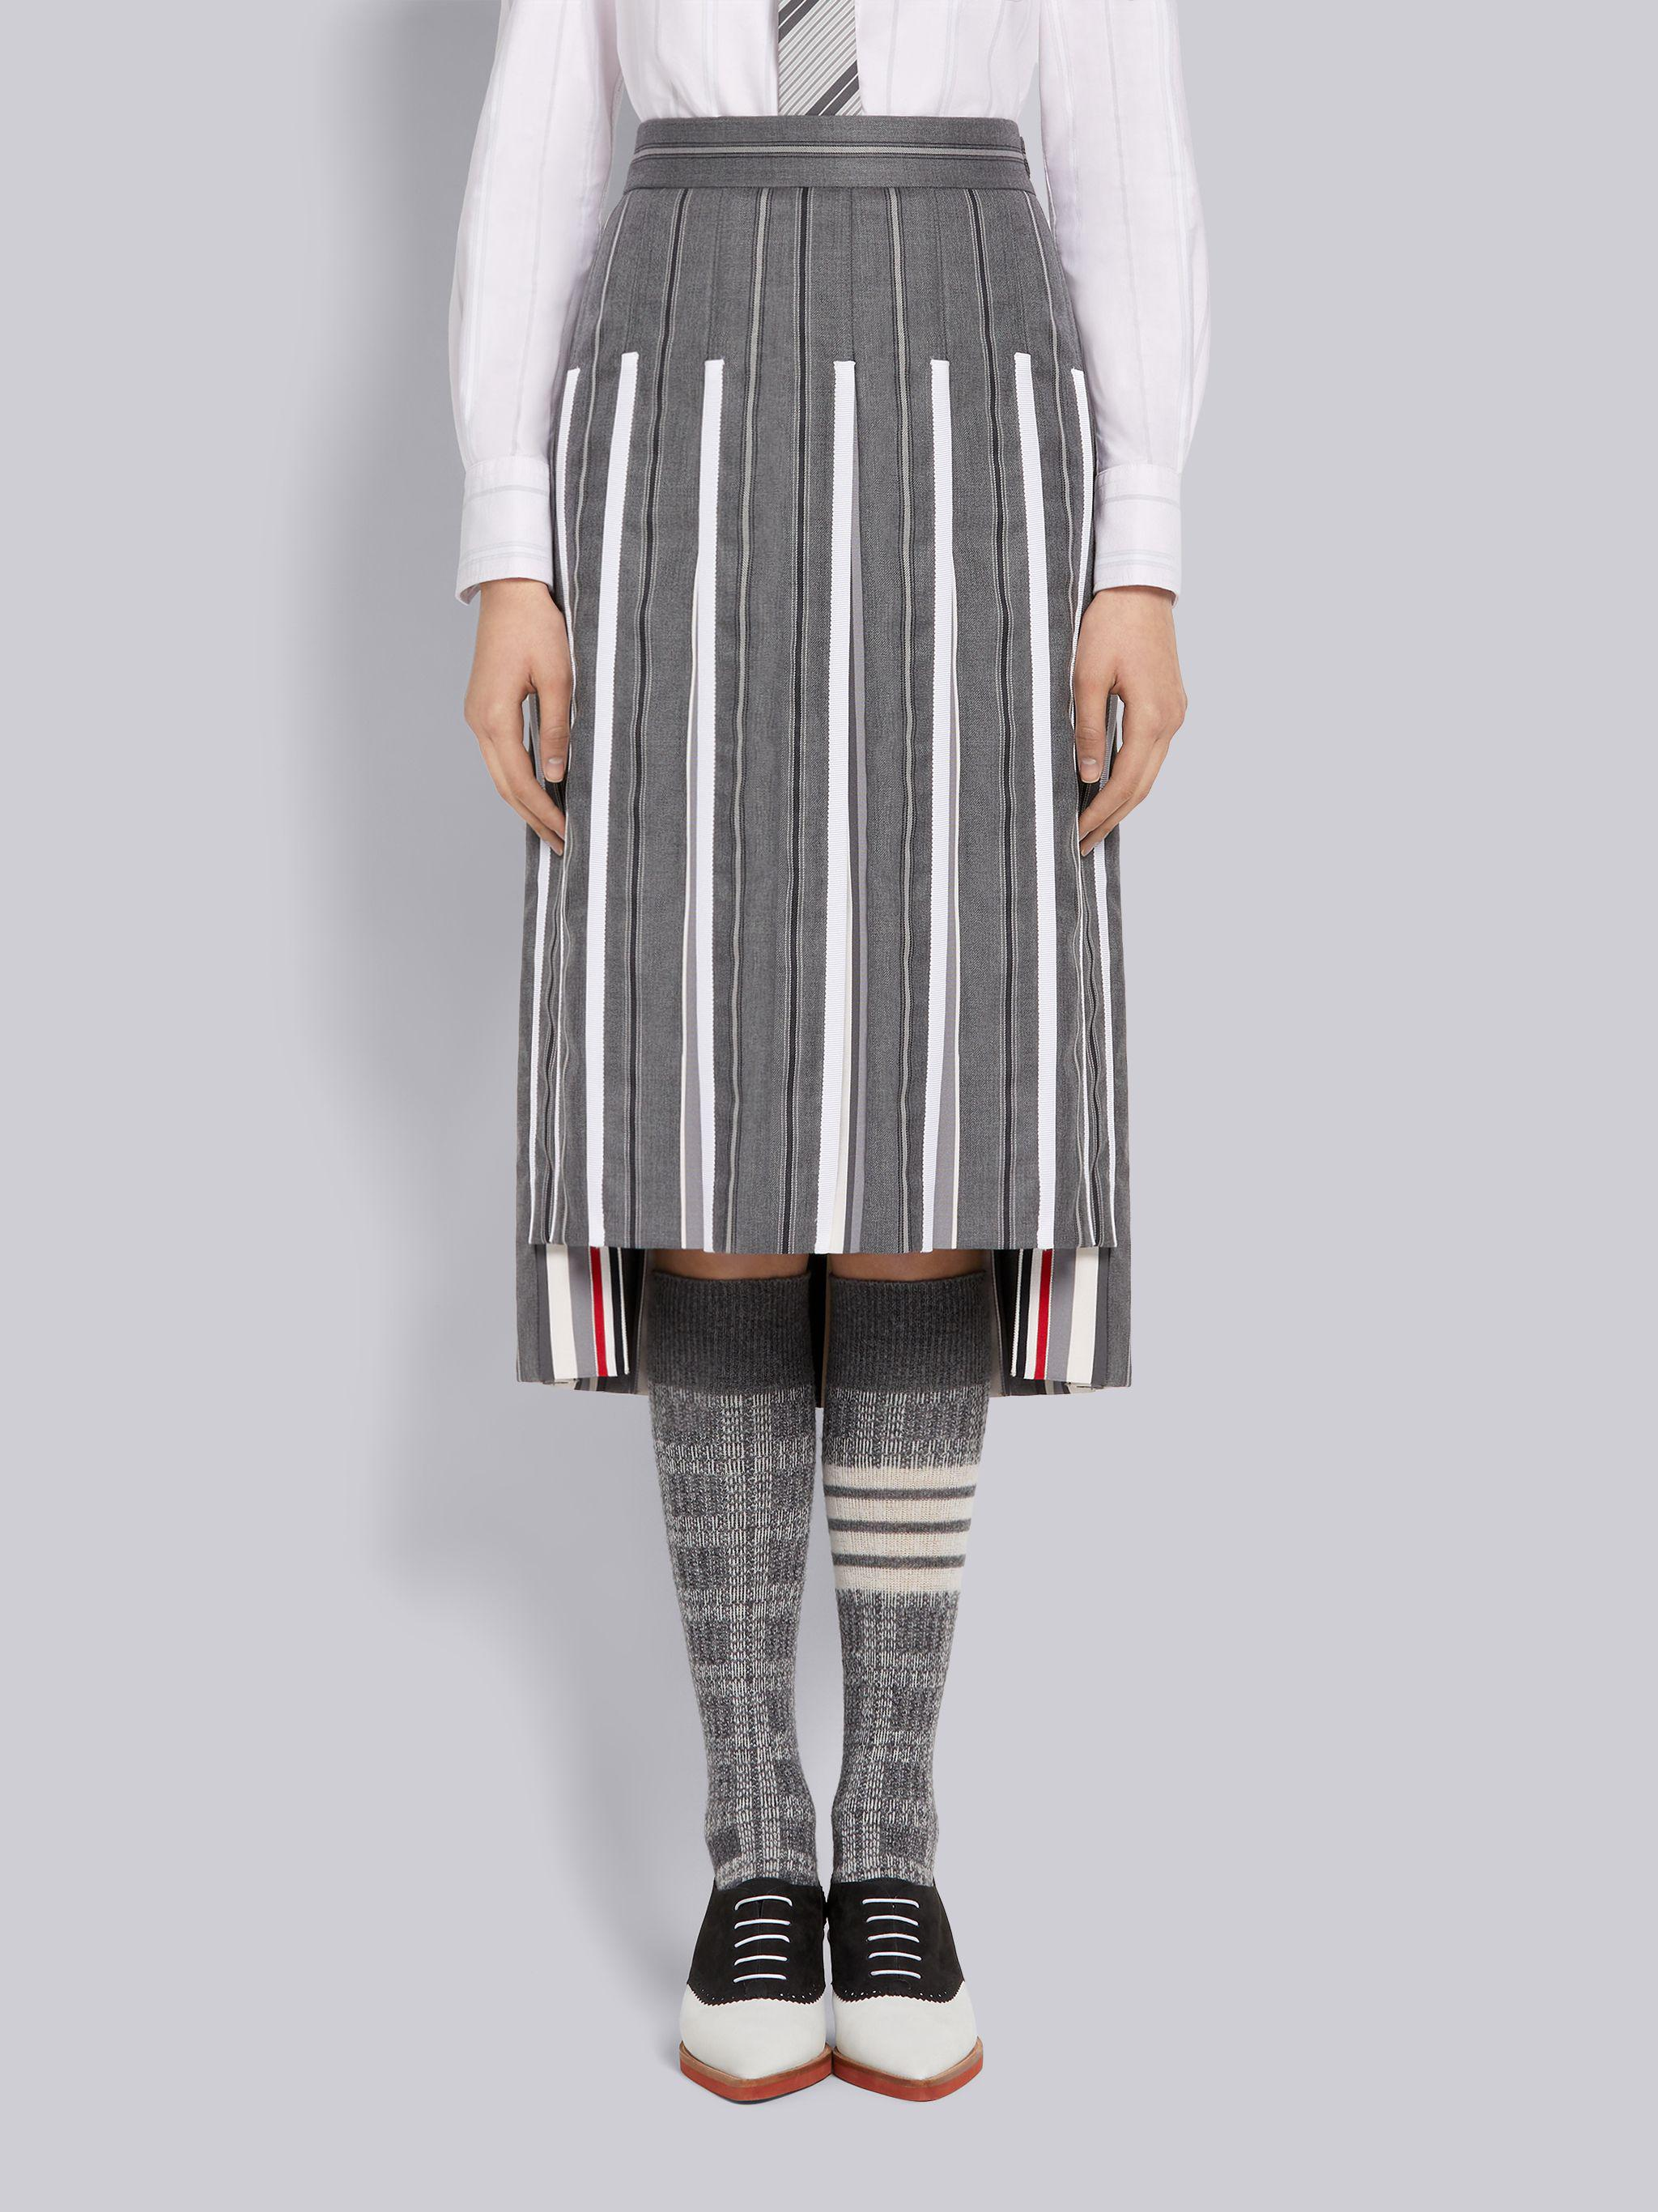 Medium Grey Alternating Stripe Wool Suiting Dropped Back Below-the-Knee Pleated Skirt With Grosgrain Tipping